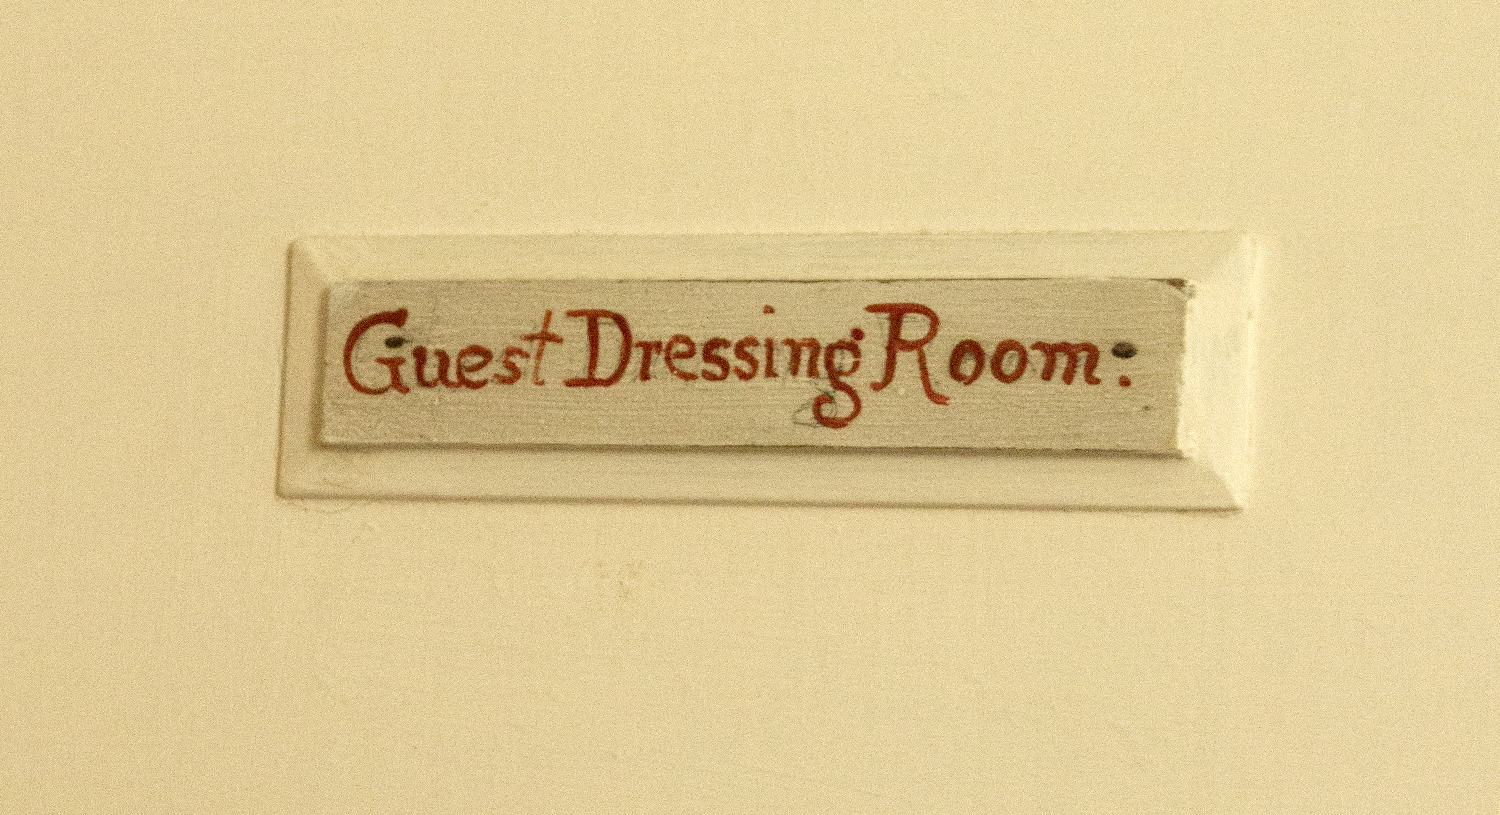 A room label in the house